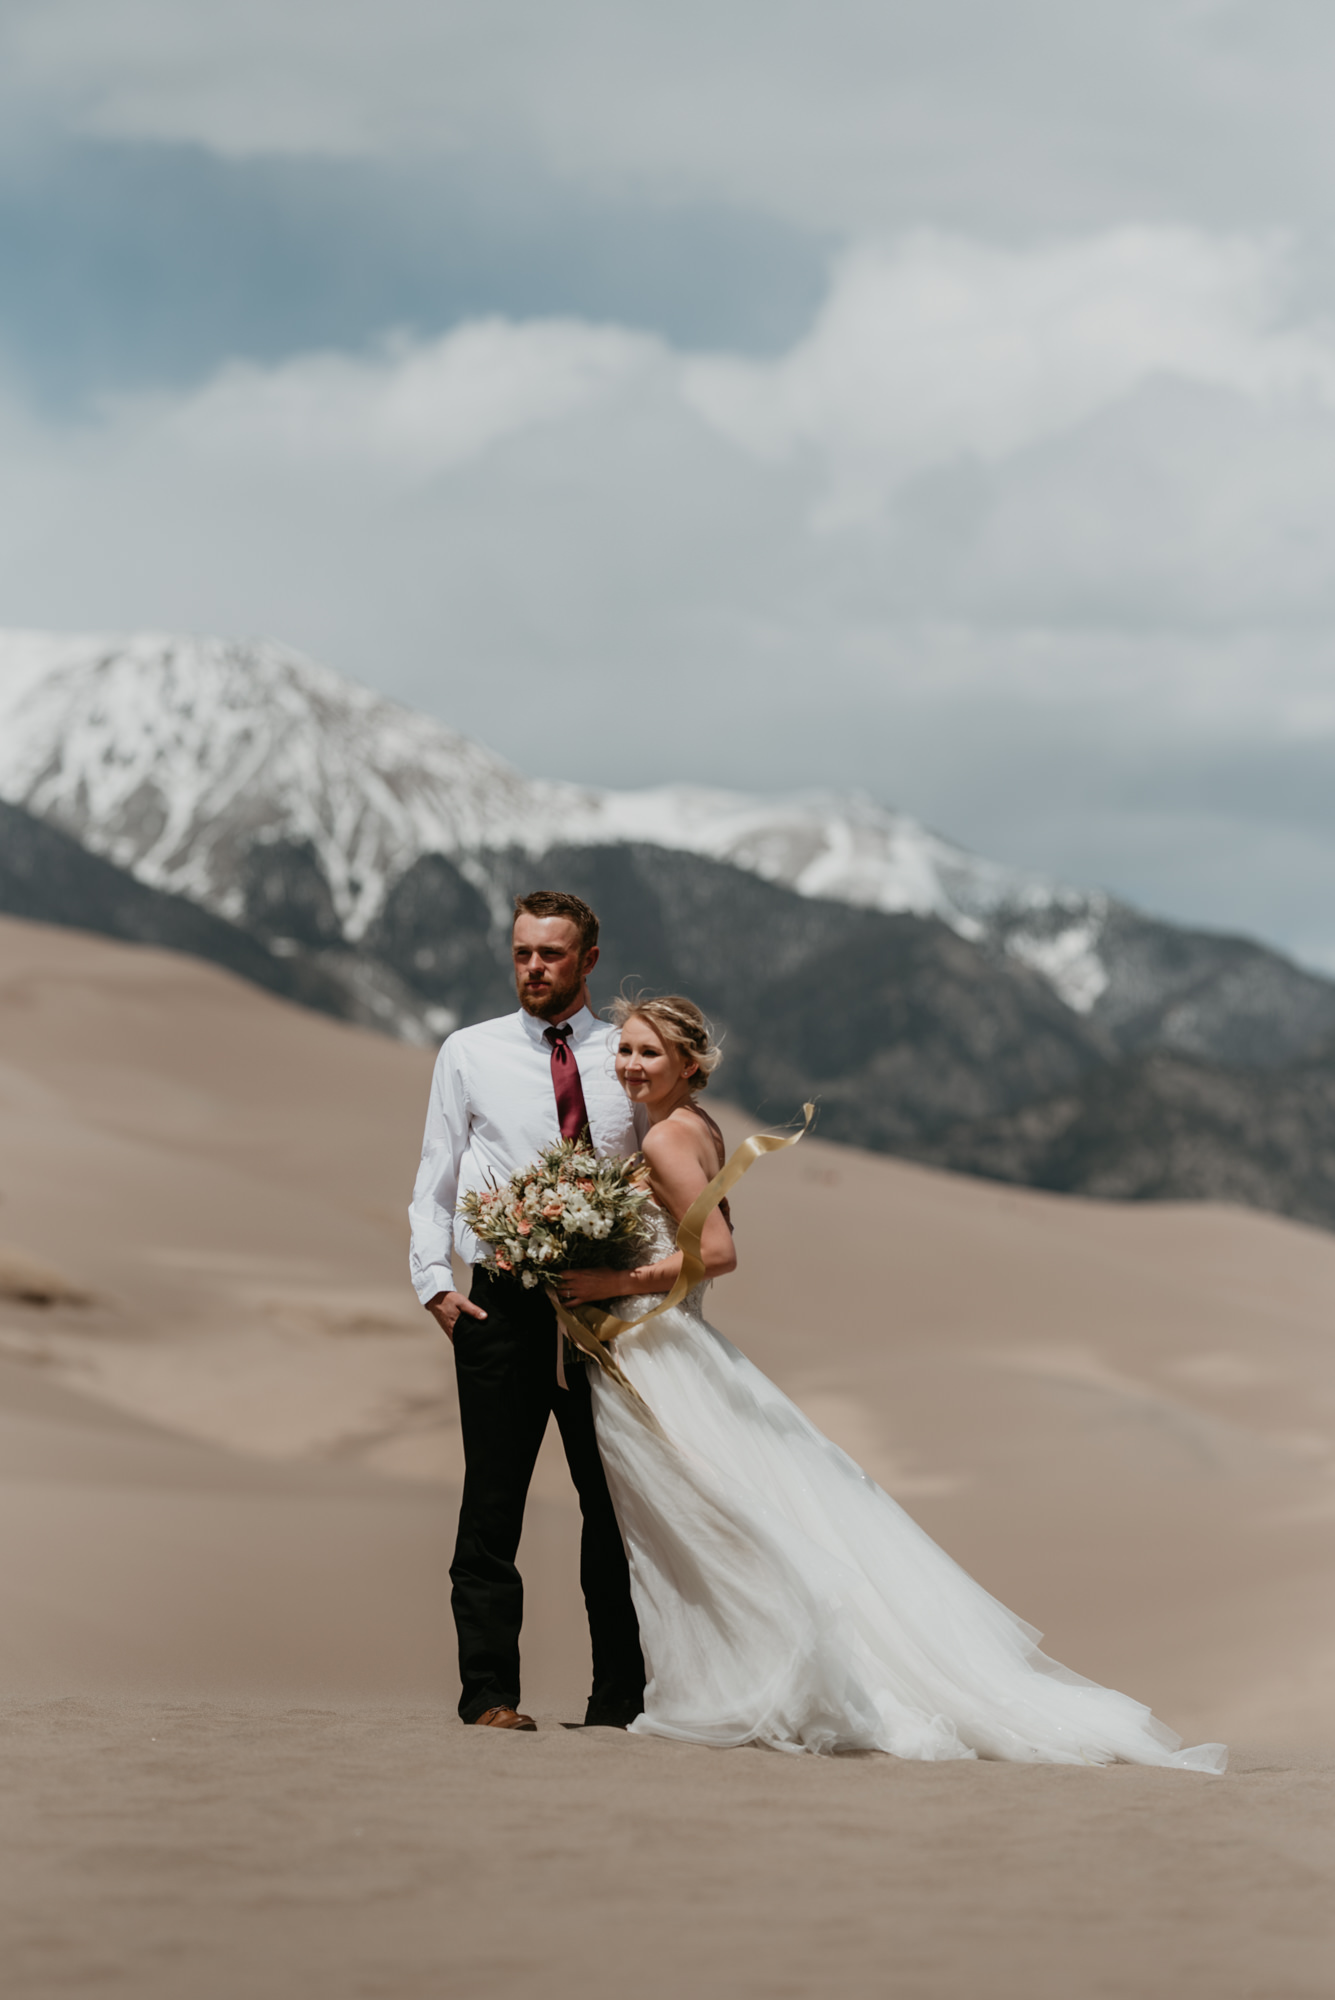 Colorado's epic views are perfect for an outdoor wedding.